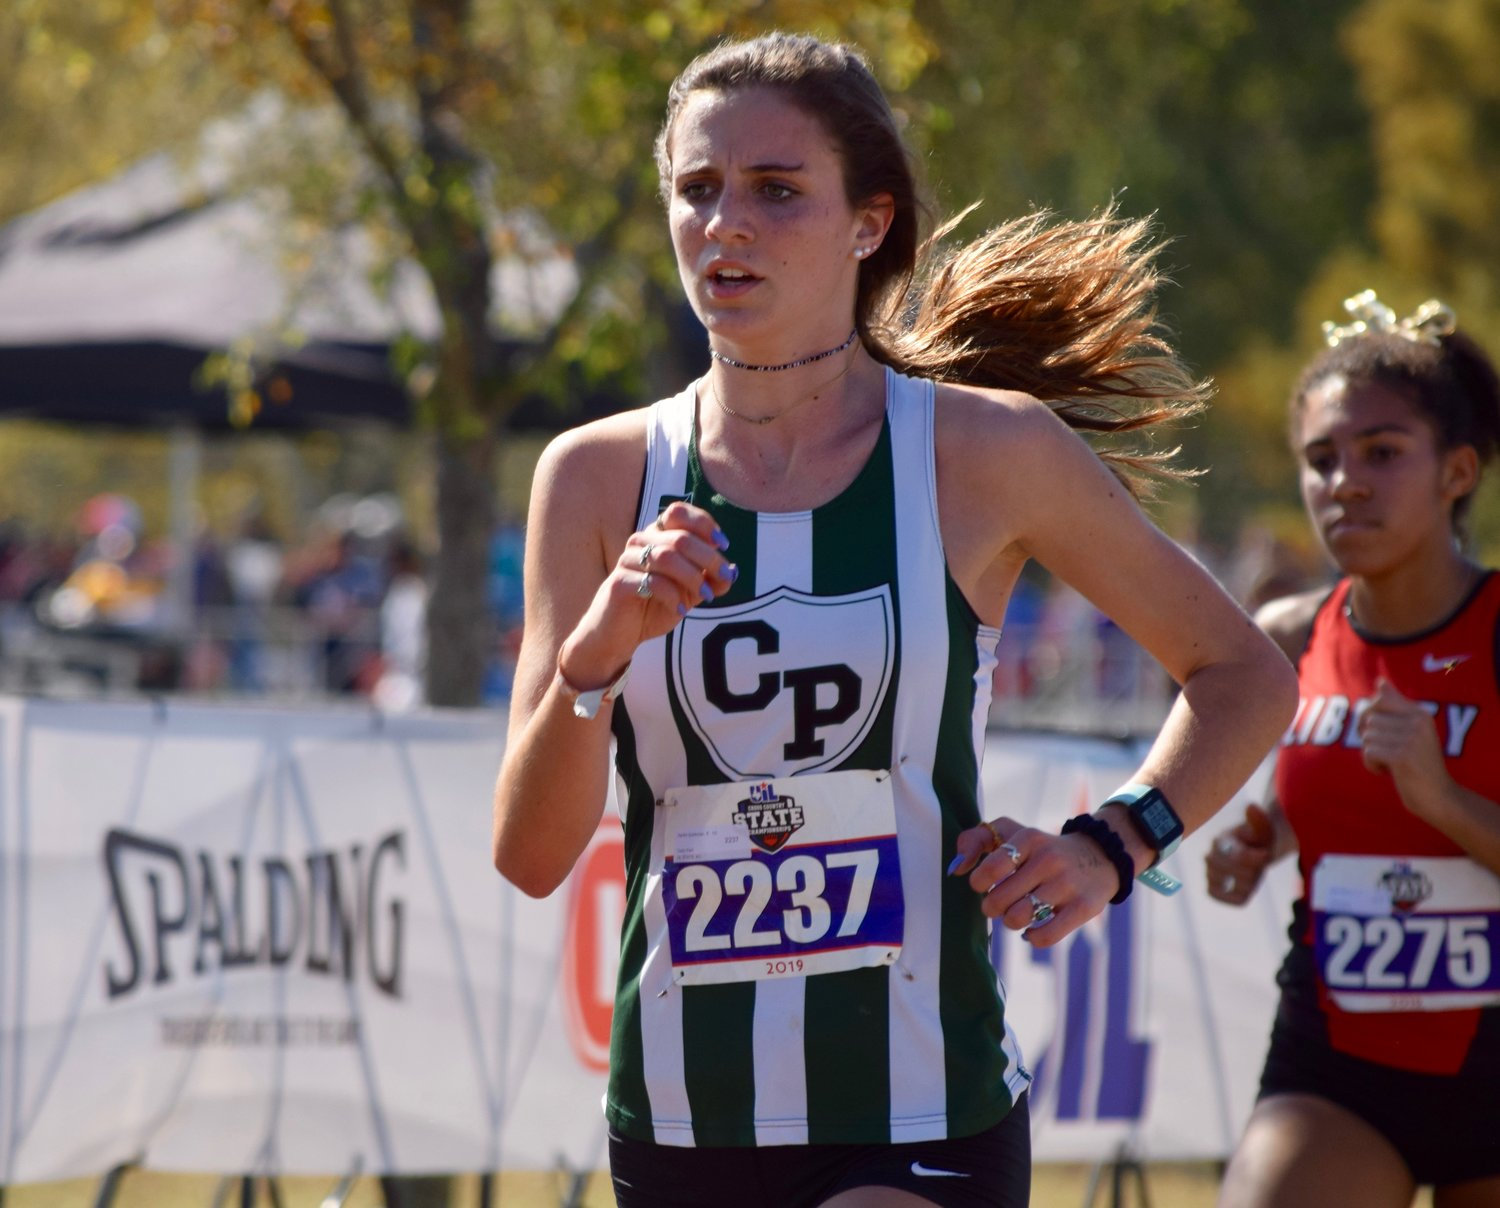 Cedar Park runner Xanthe Sparkman finished with a time of 20:09.38 at the state cross country meet Saturday at Old Settlers Park in Round Rock.